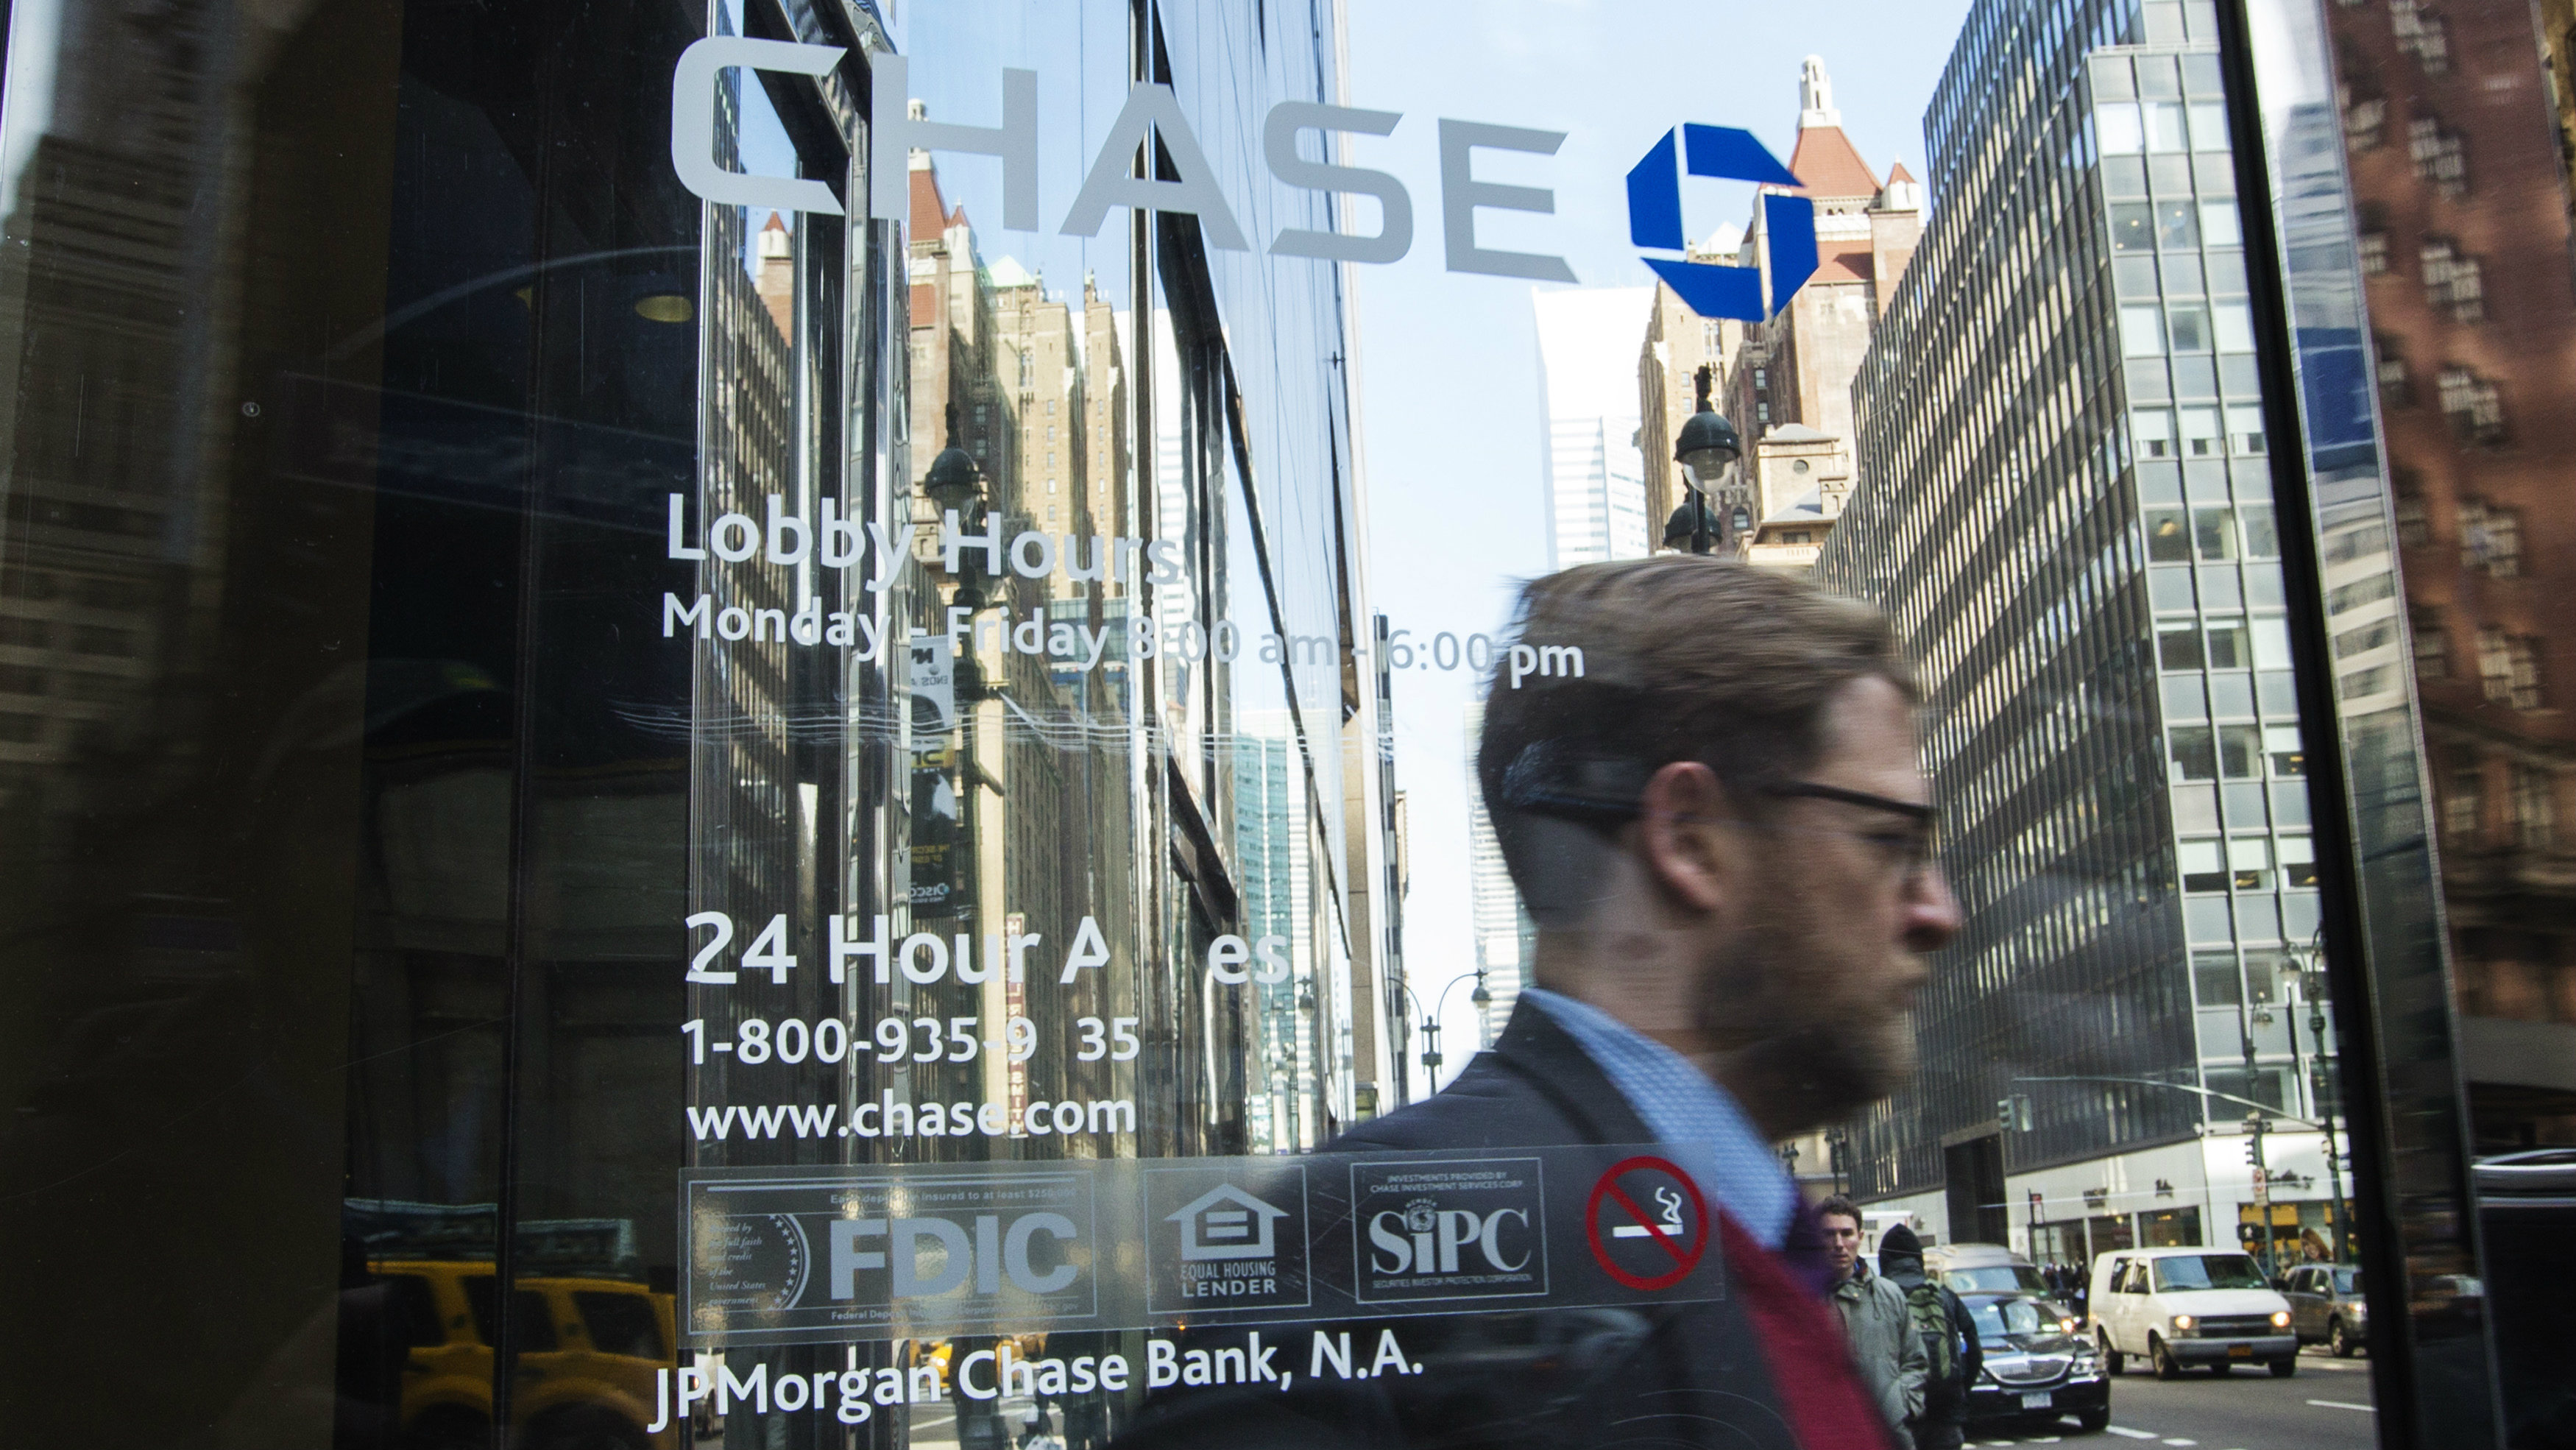 """A customer walks out of a branch of the JPMorgan Chase & Co bank in New York, March 15, 2013. A former JPMorgan Chase & Co executive in charge of the unit that made the disastrous """"London Whale"""" trades that became public last year, told lawmakers on Friday that she does not bear personal responsibility for the $6 billion in losses."""